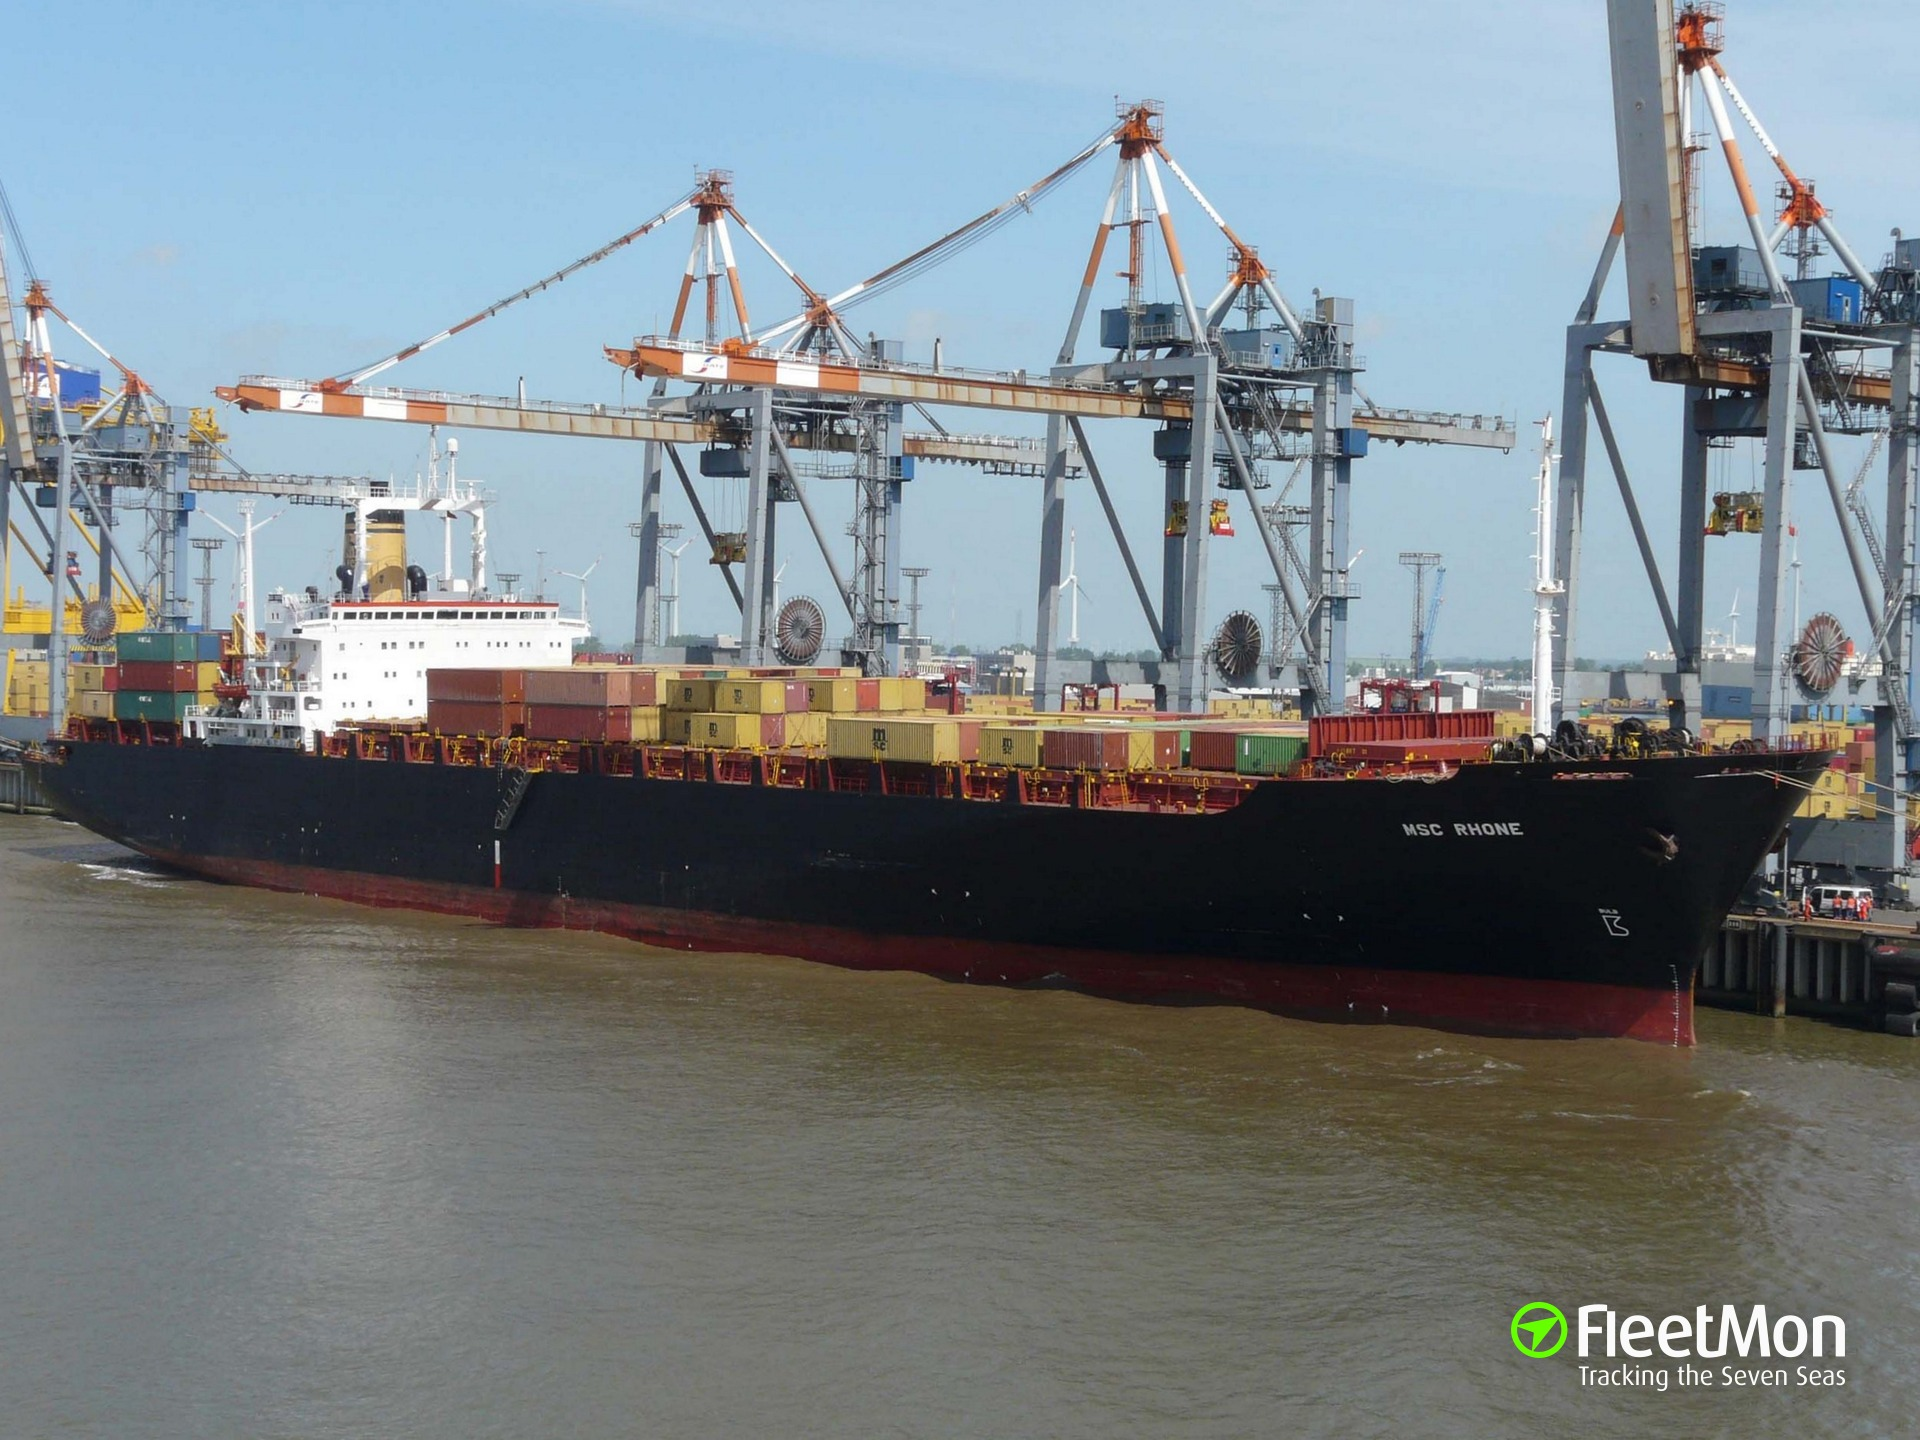 Exceptional Share Photo Of MSC RHONE